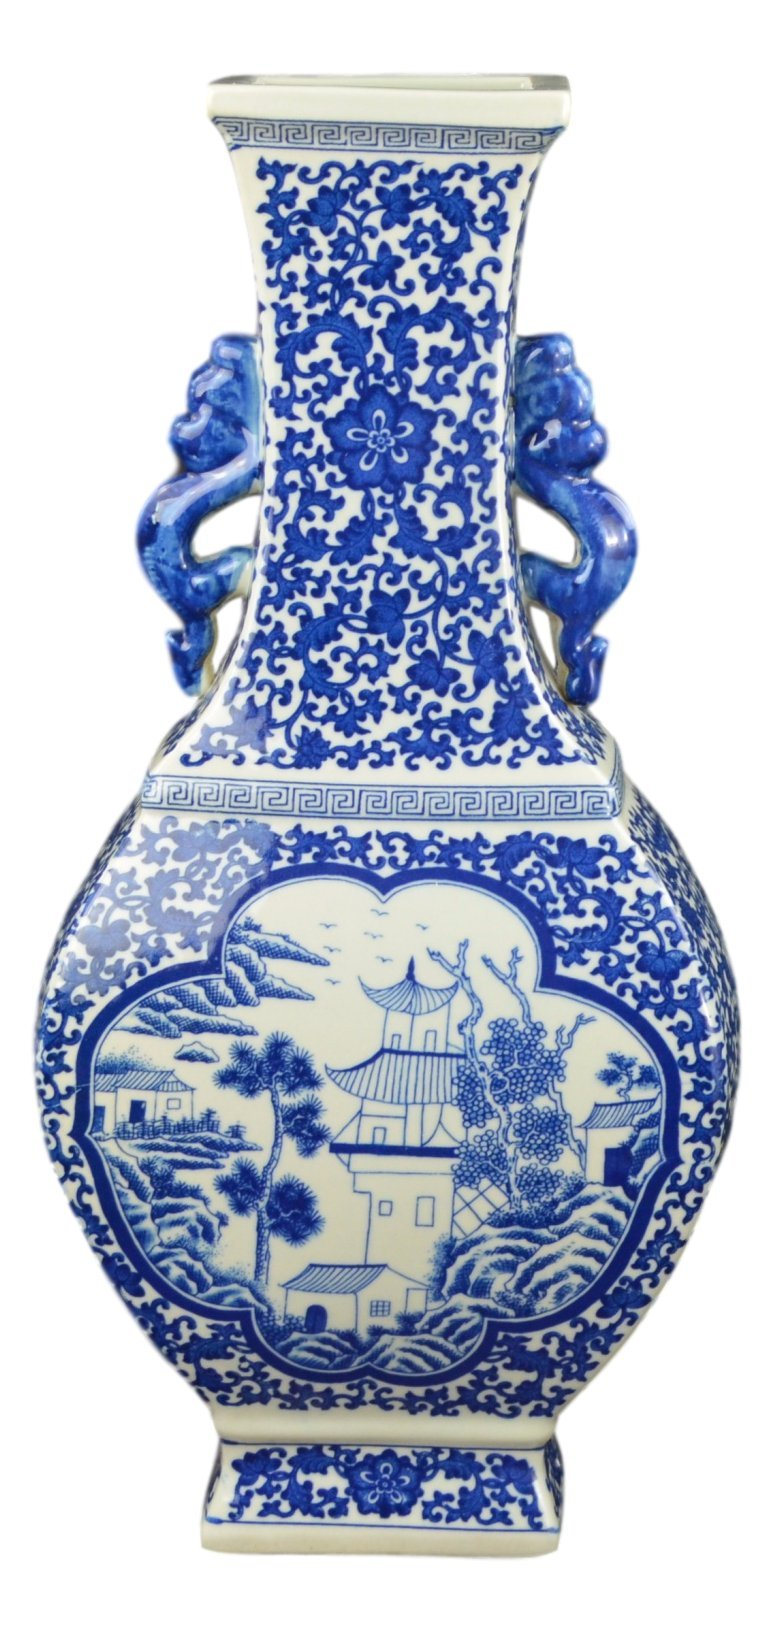 Festcool 17'' Classic Blue and White Porcelain Vase, Landscape Ceramic China Qing Style (D18)